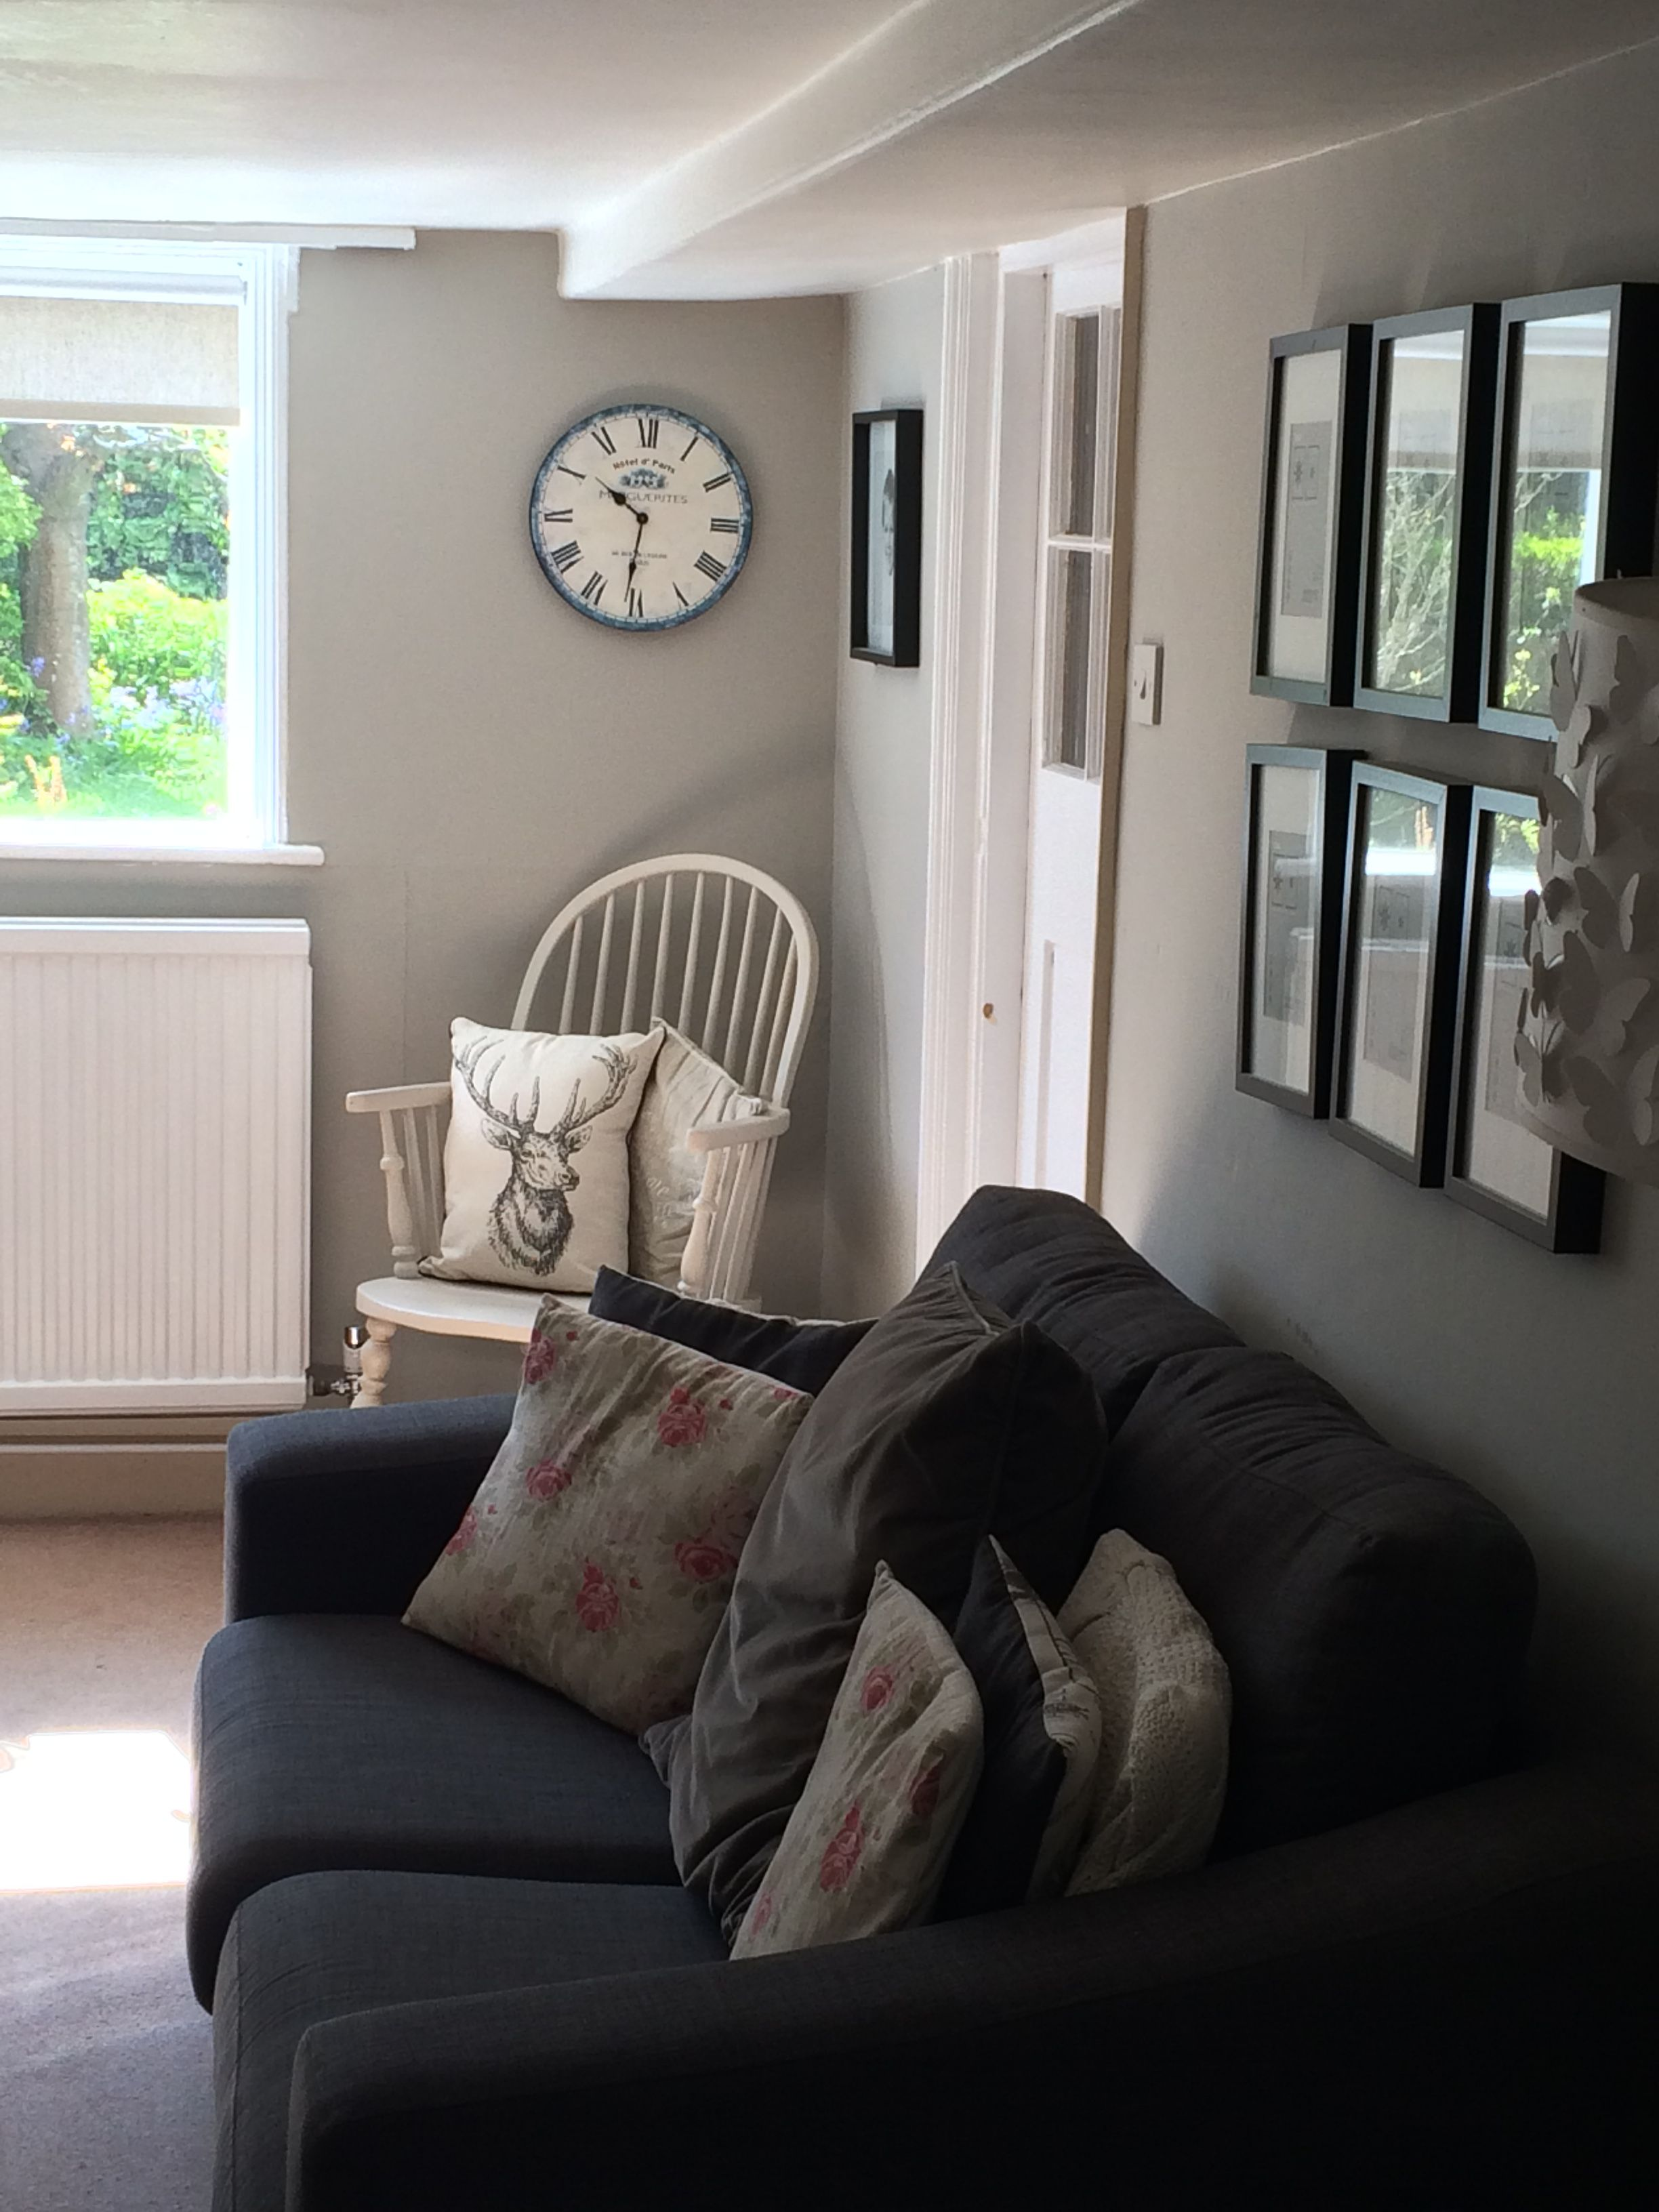 The Snug Painted In Farrow And Balls Purbeck Stone A Beautiful Warm Grey Home Decor Living Room Home